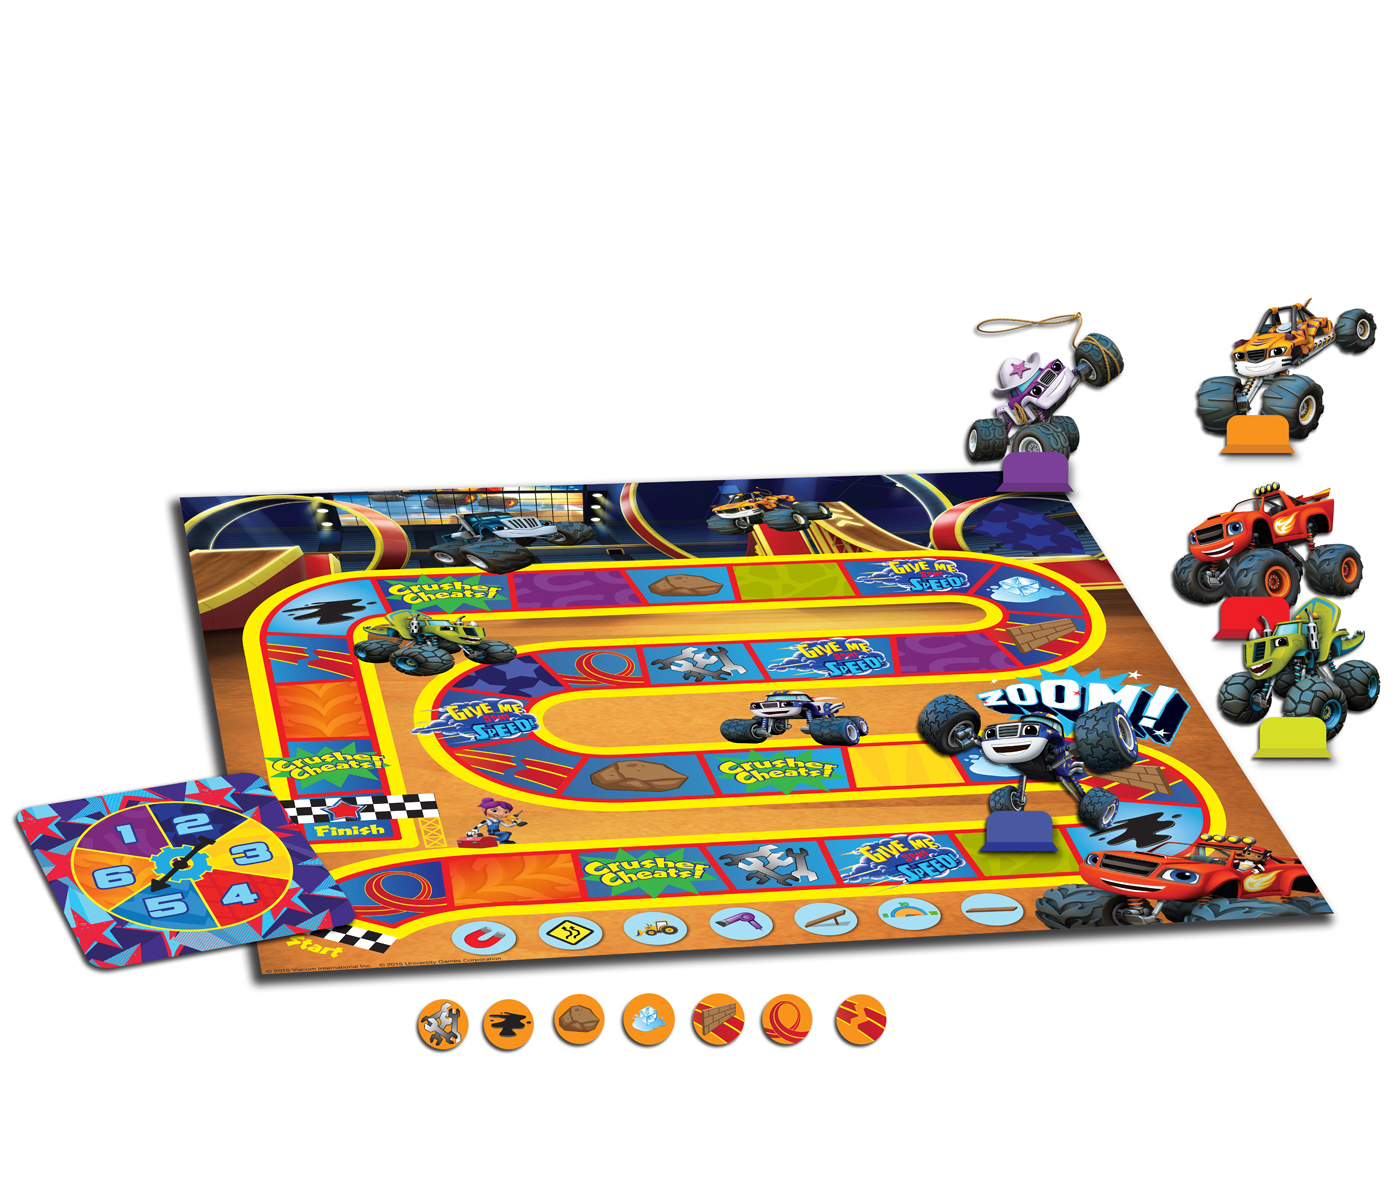 Blaze and the Monster Machines: Monster Dome Challenge Game